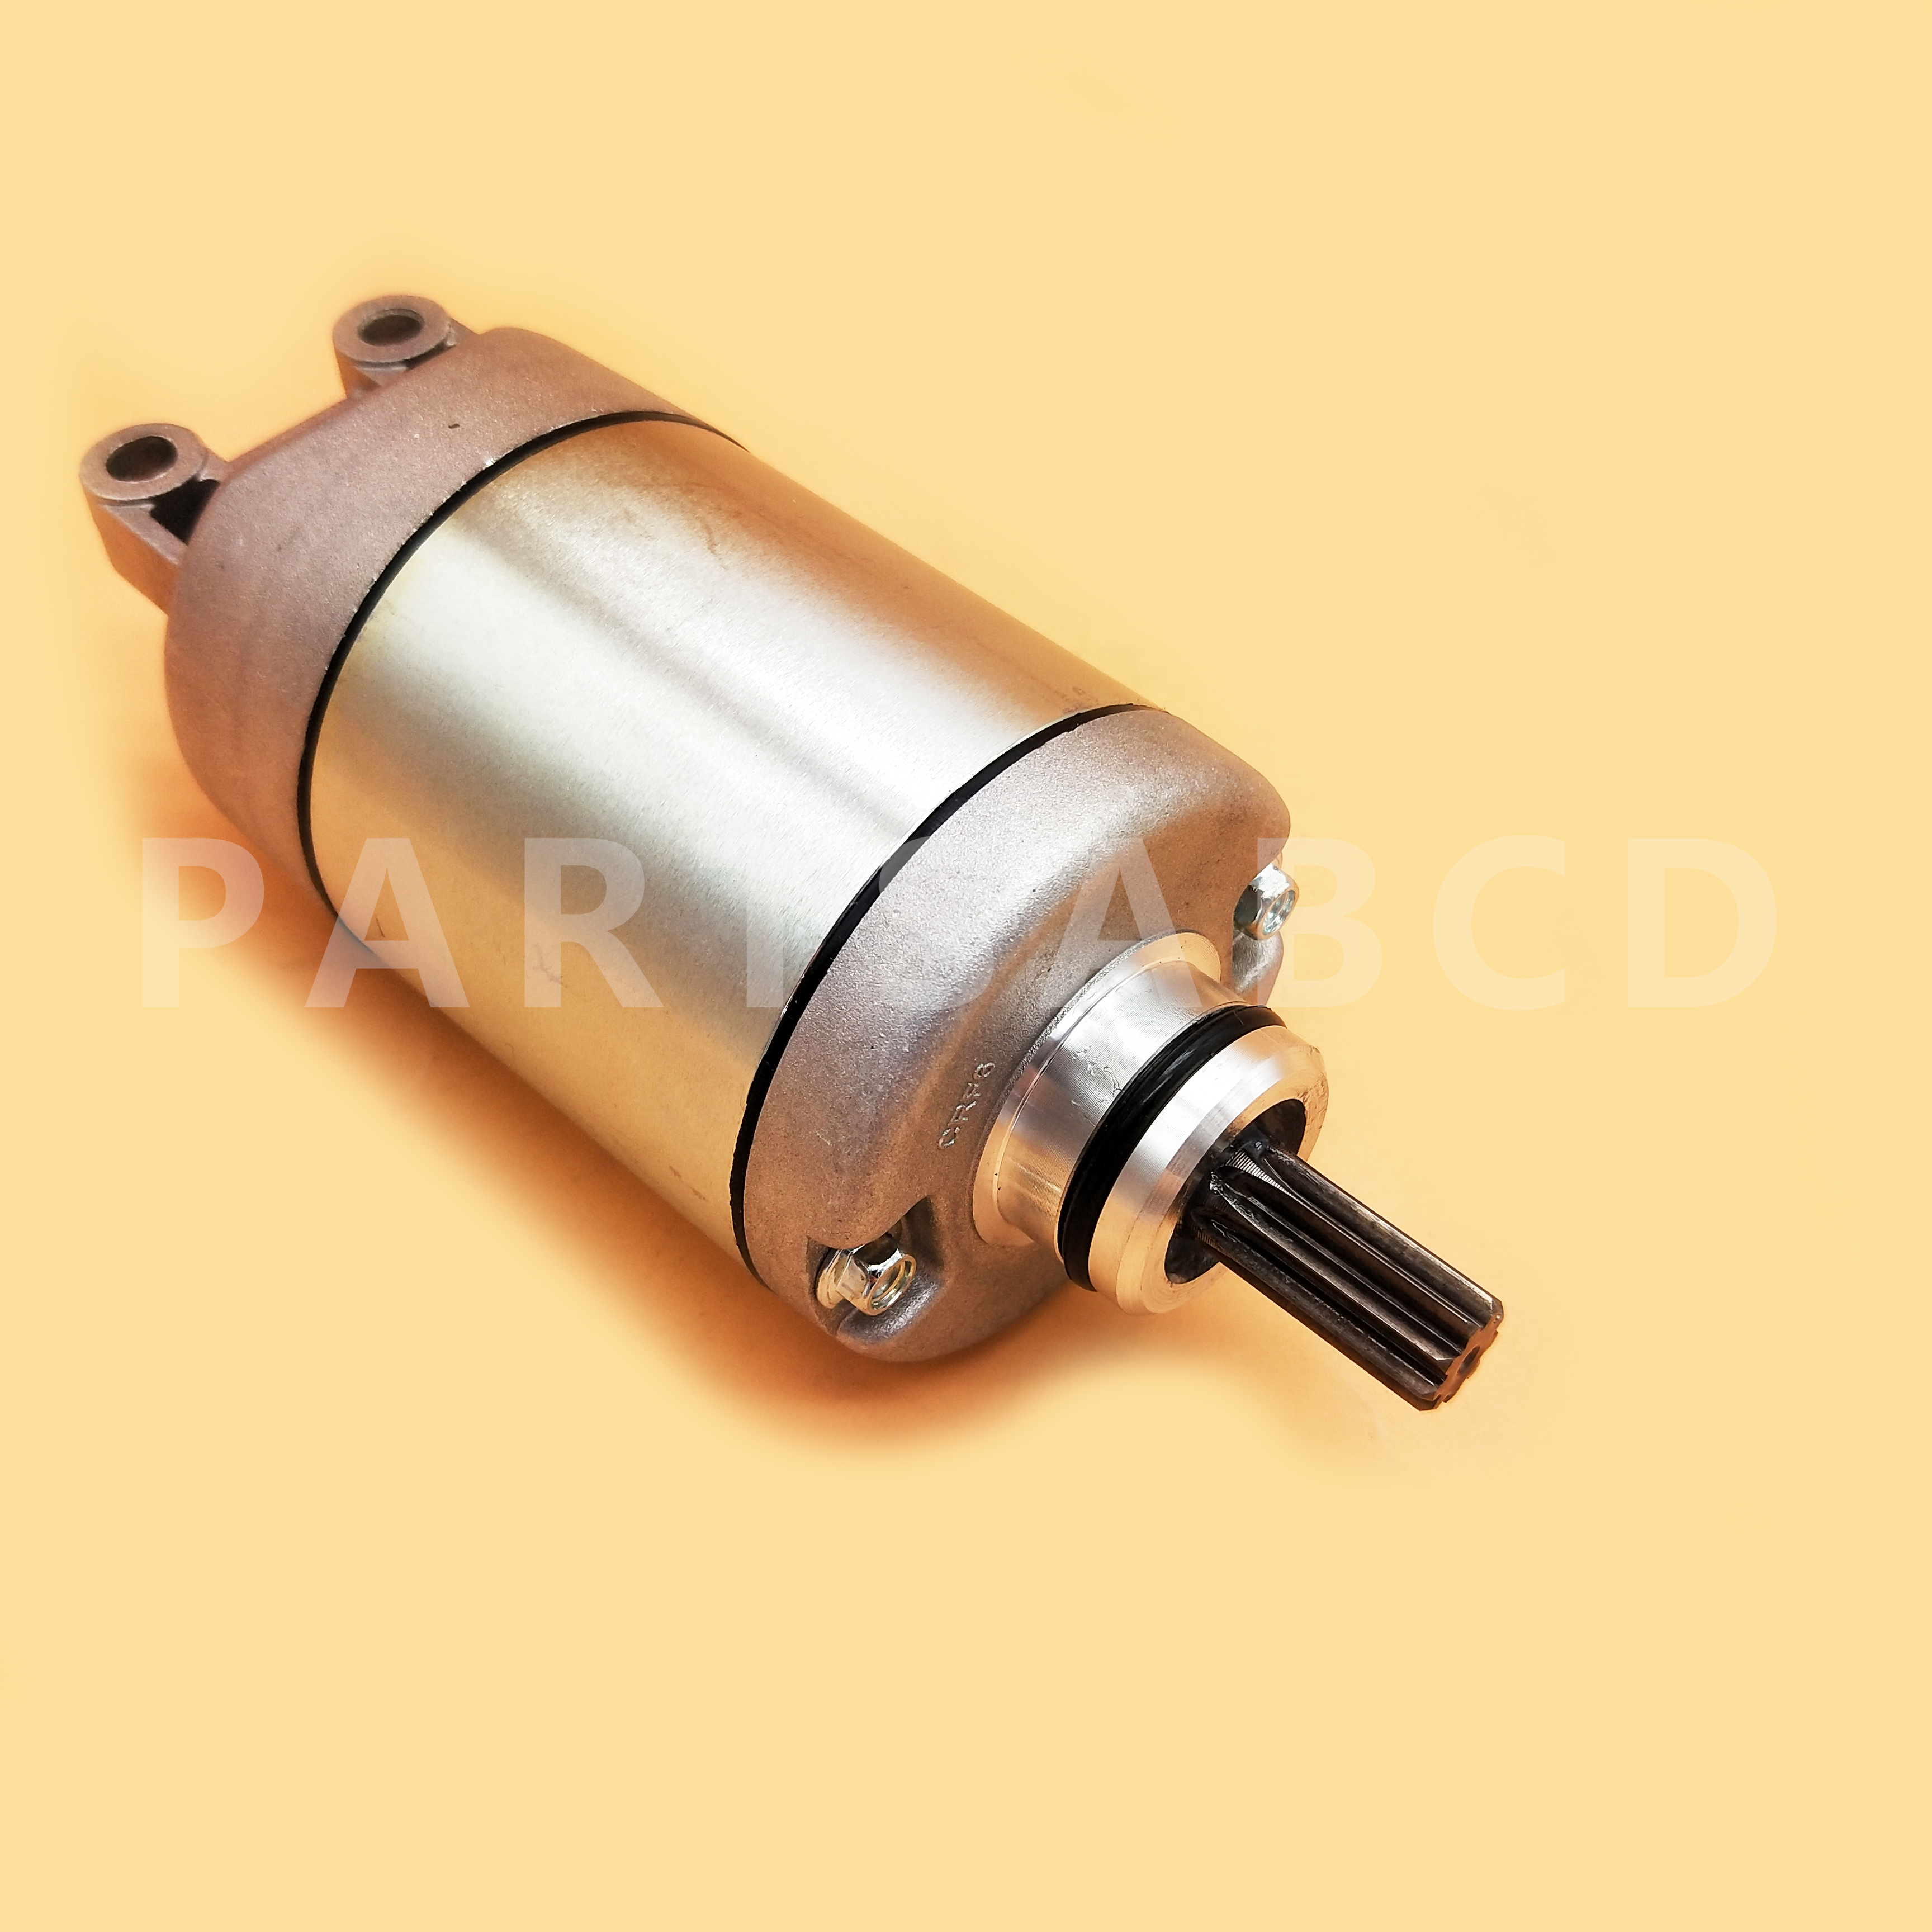 9T Starter Motor fit for Suzuki GSF1250 GSX1250 for Bandit GSF 1250 31100-18H00(China)